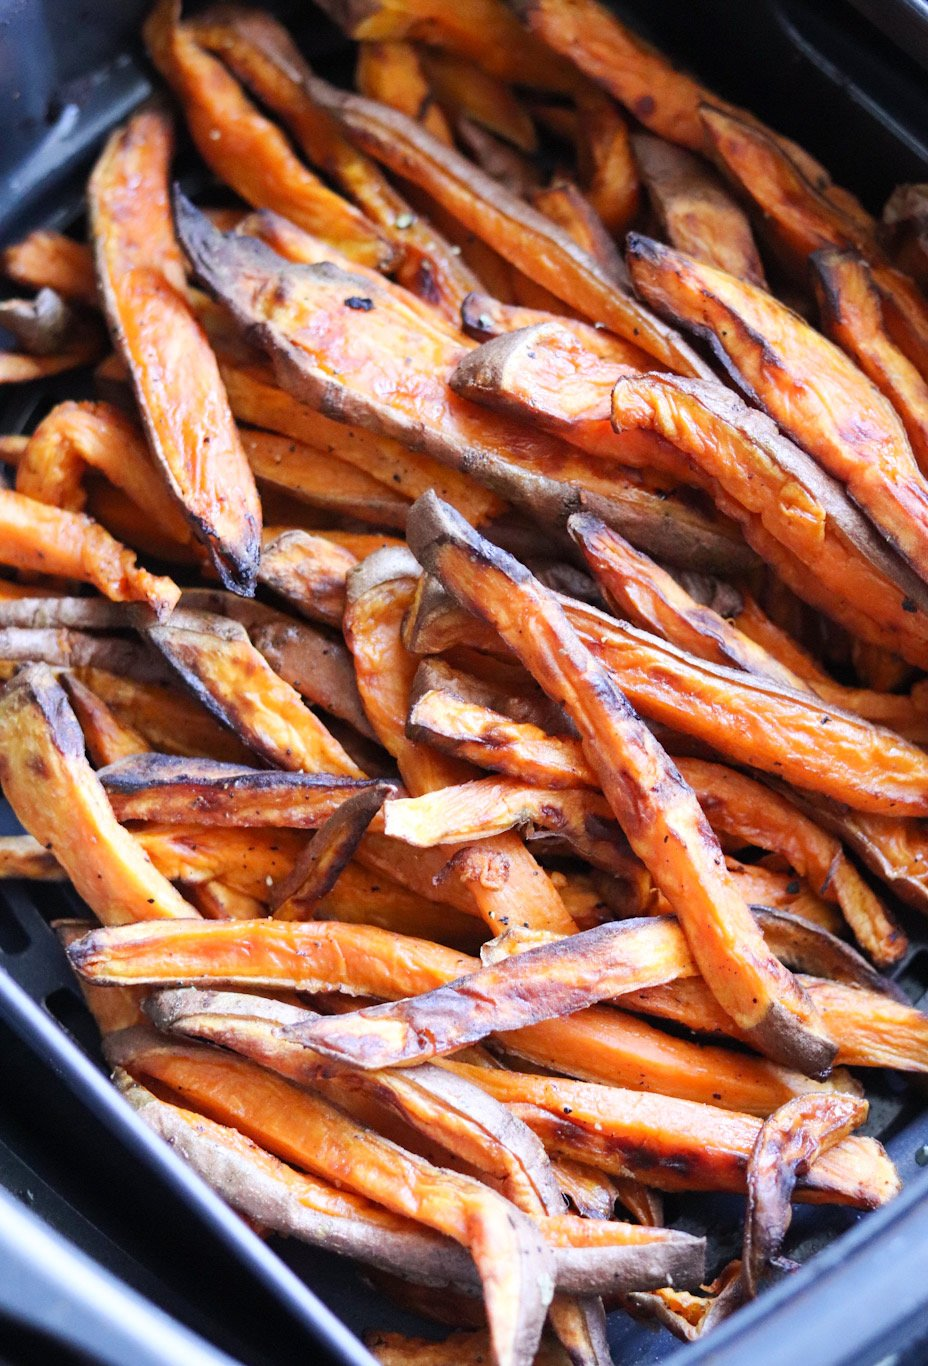 Close up of cooked crispy sweet potato fries in the air fryer basket.